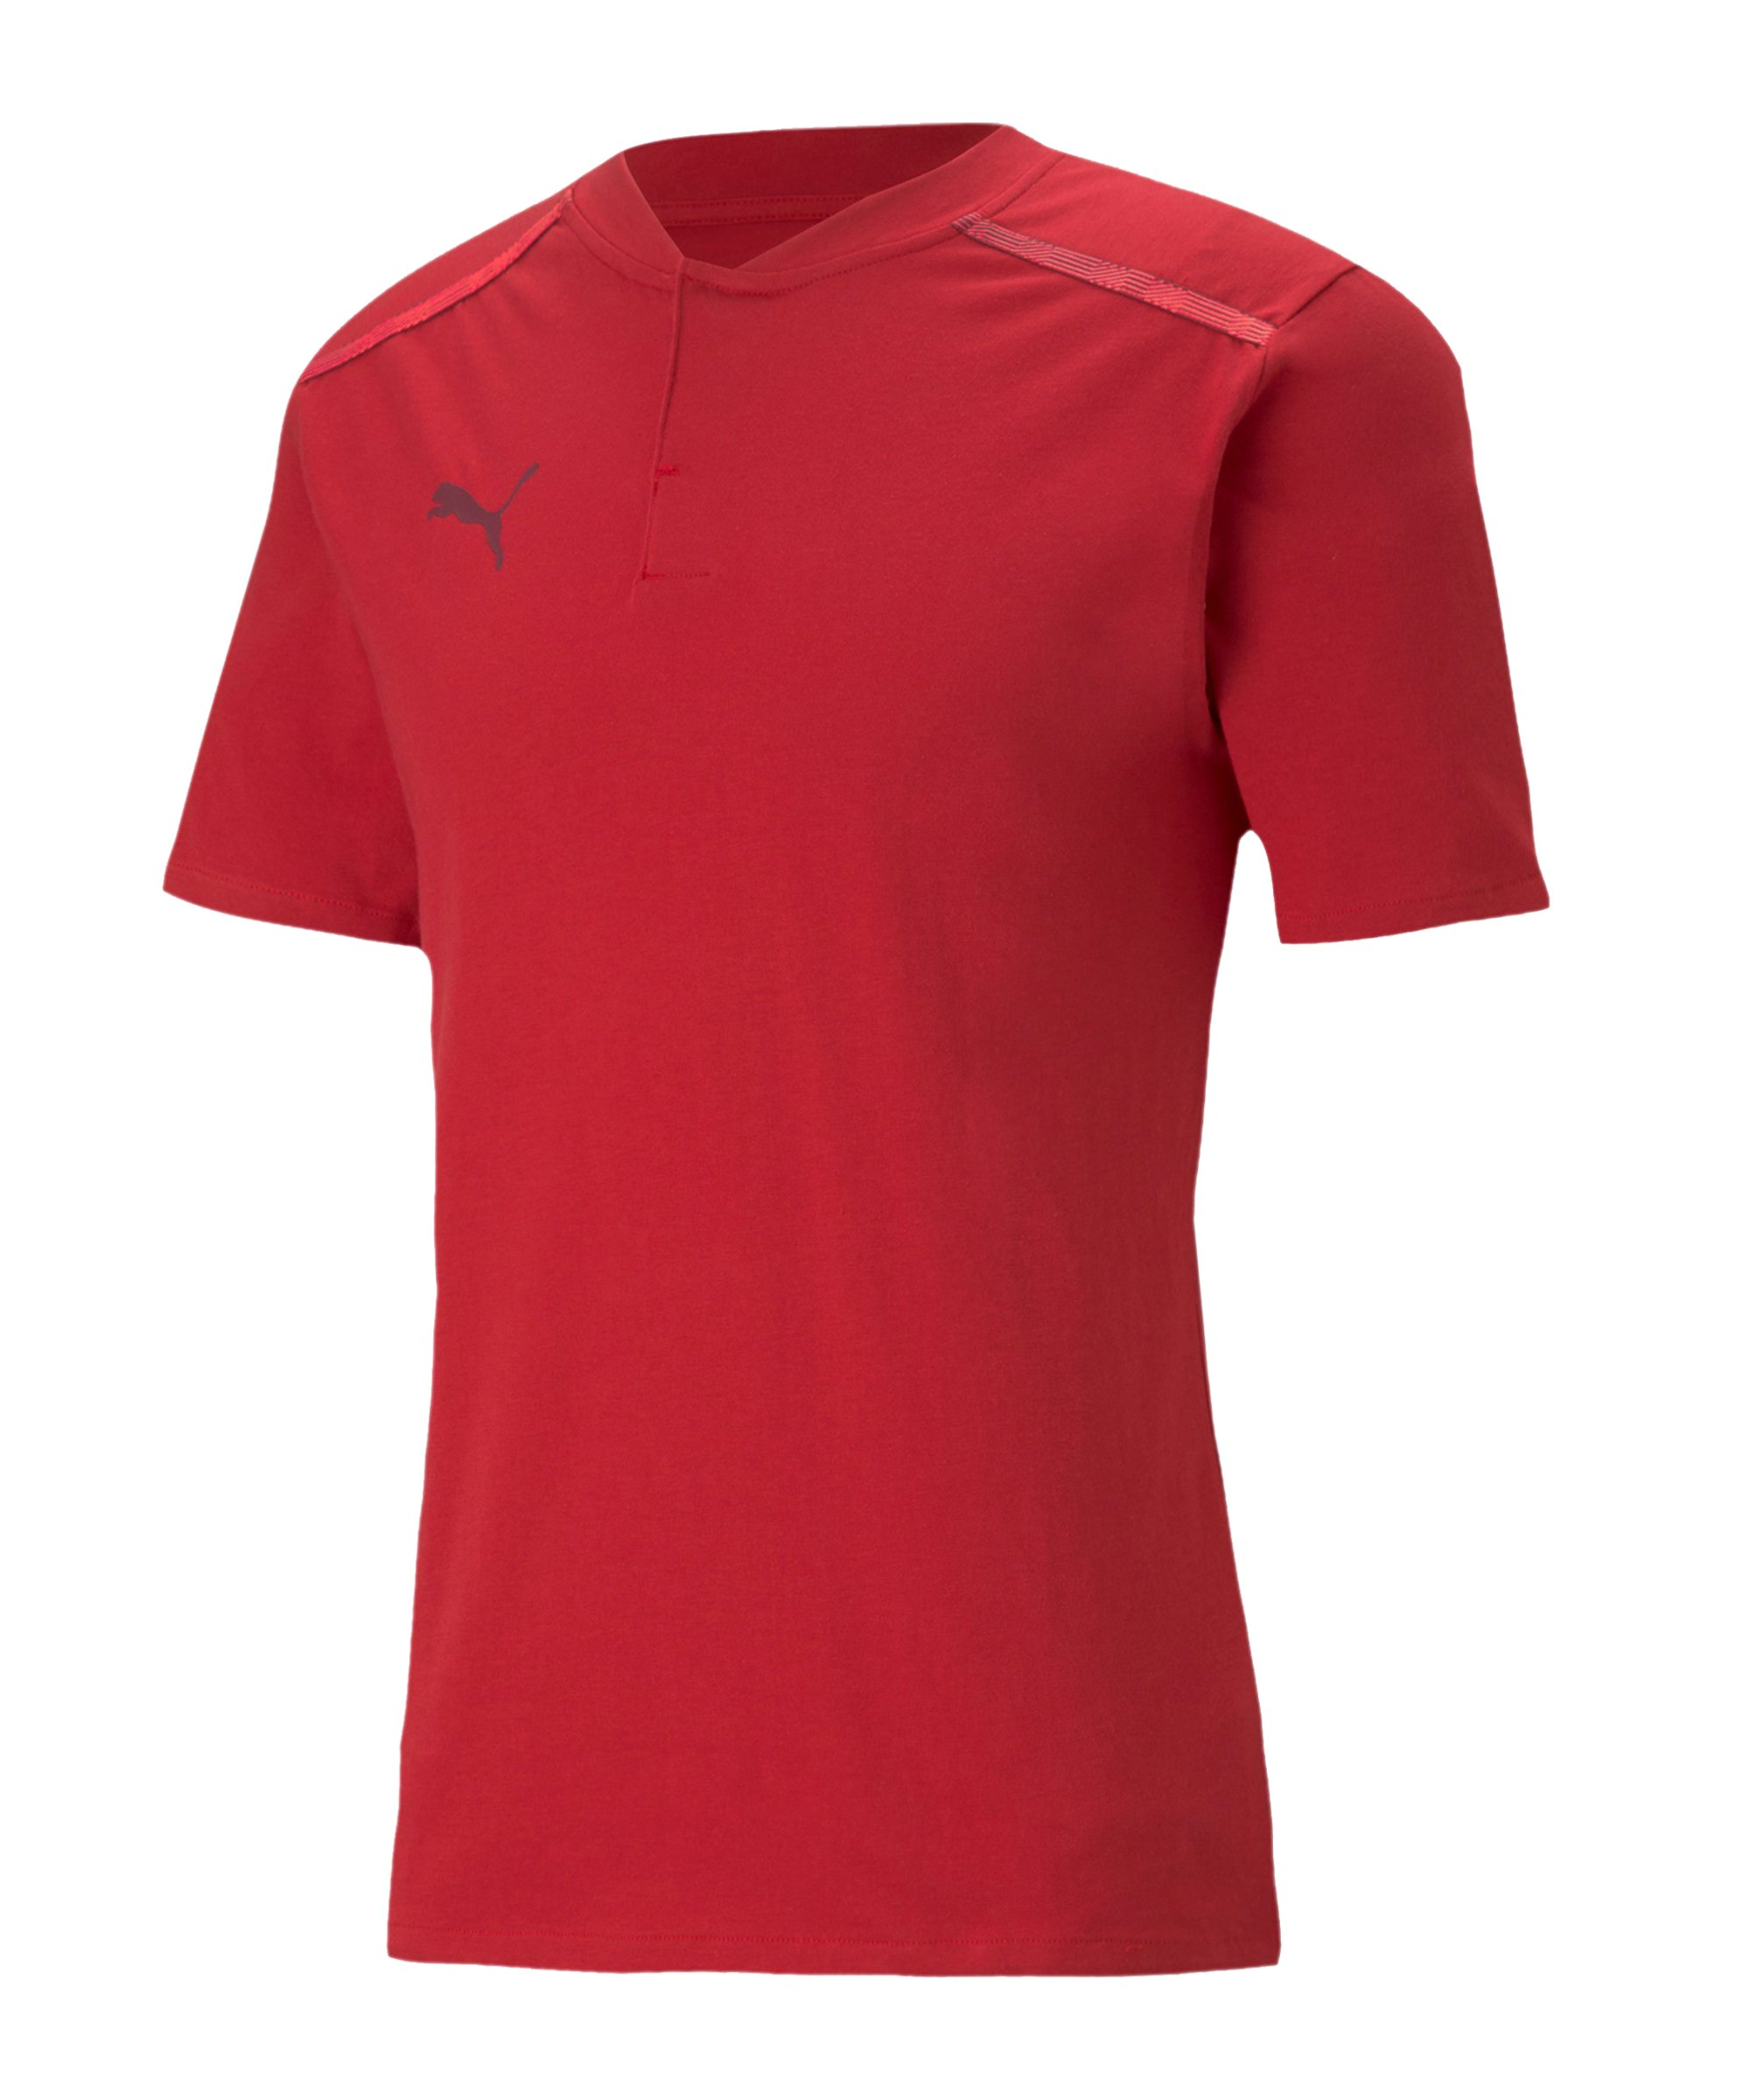 PUMA teamCUP Casuals Poloshirt Rot F01 - rot